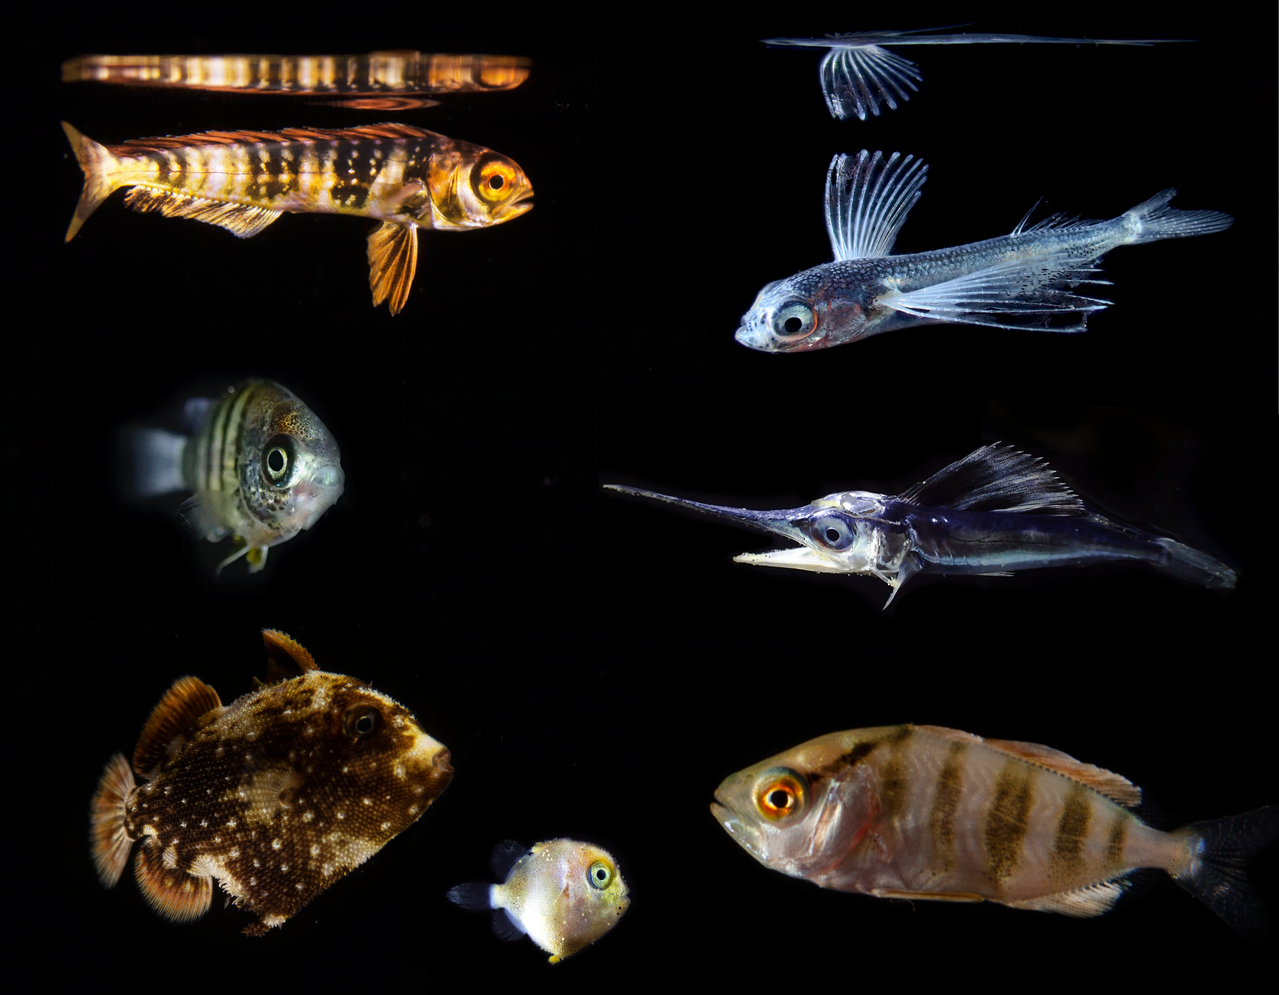 Often just weeks old, numerous larval fish had plastics in their stomachs, including mahi-mahi (top left), flying fish (top right), spearfish (middle right), jacks, (bottom right), triggerfish (two sizes, bottom left), and damsels (middle left). Photo: NOAA Fisheries/Jonathan Whitney.